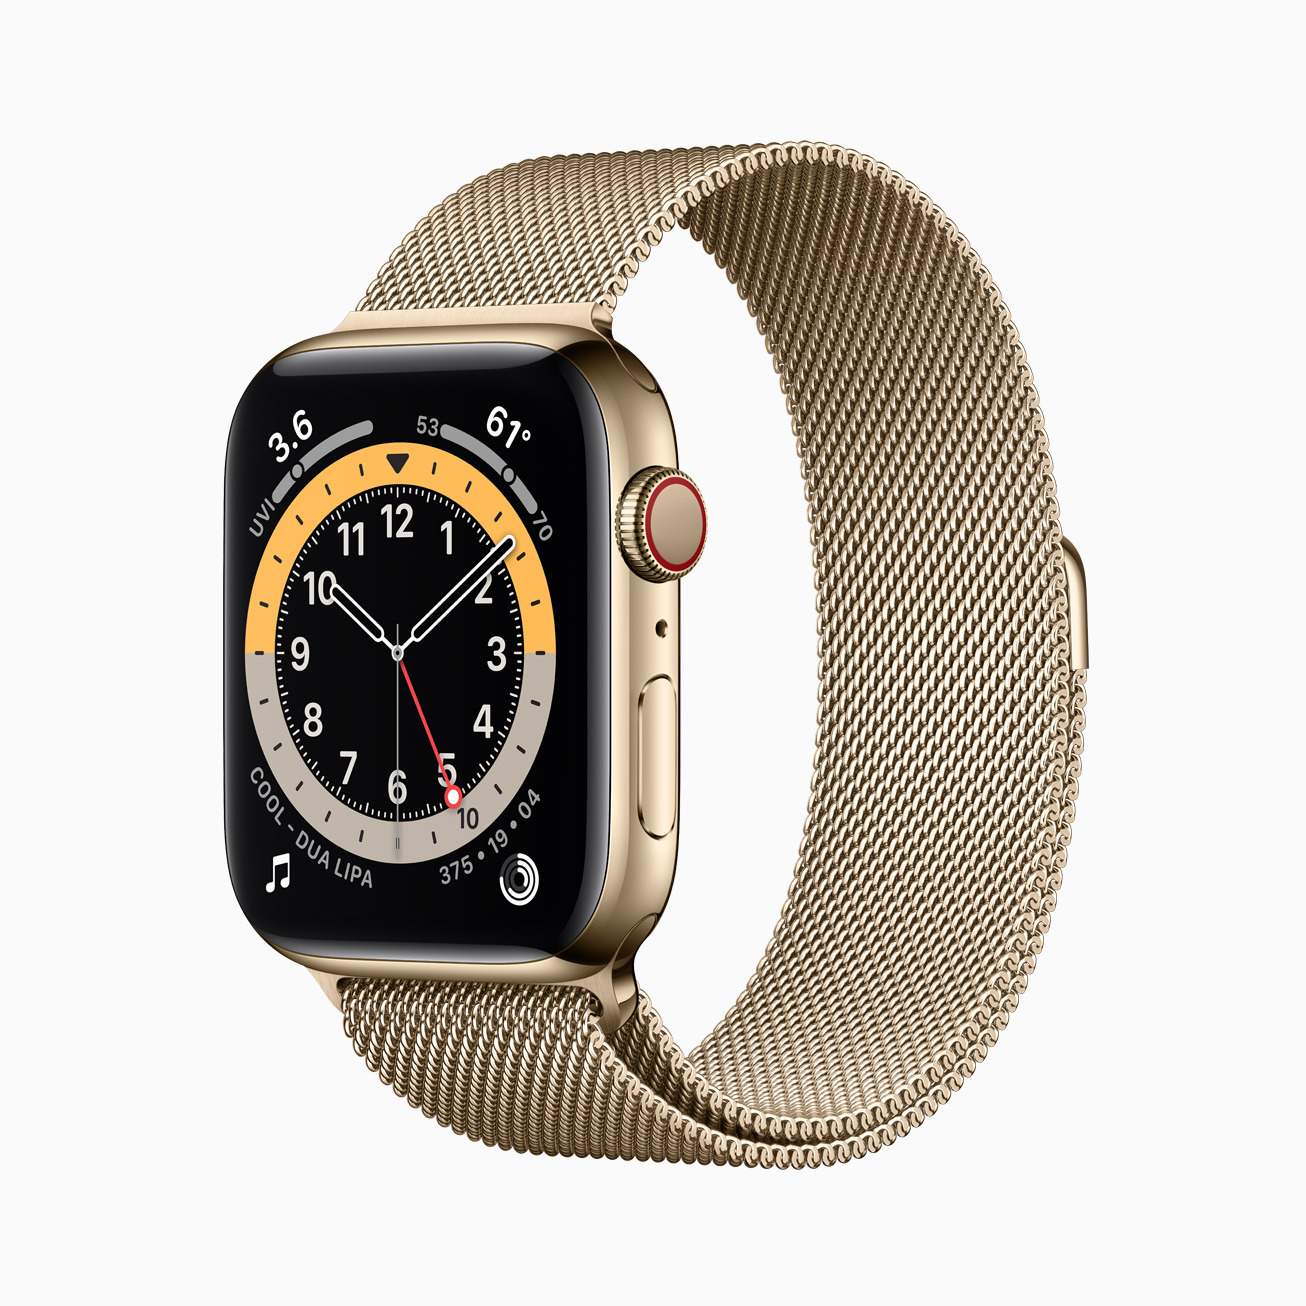 The Apple Watch Series 6 in a Stainless Steel gold-colored case.